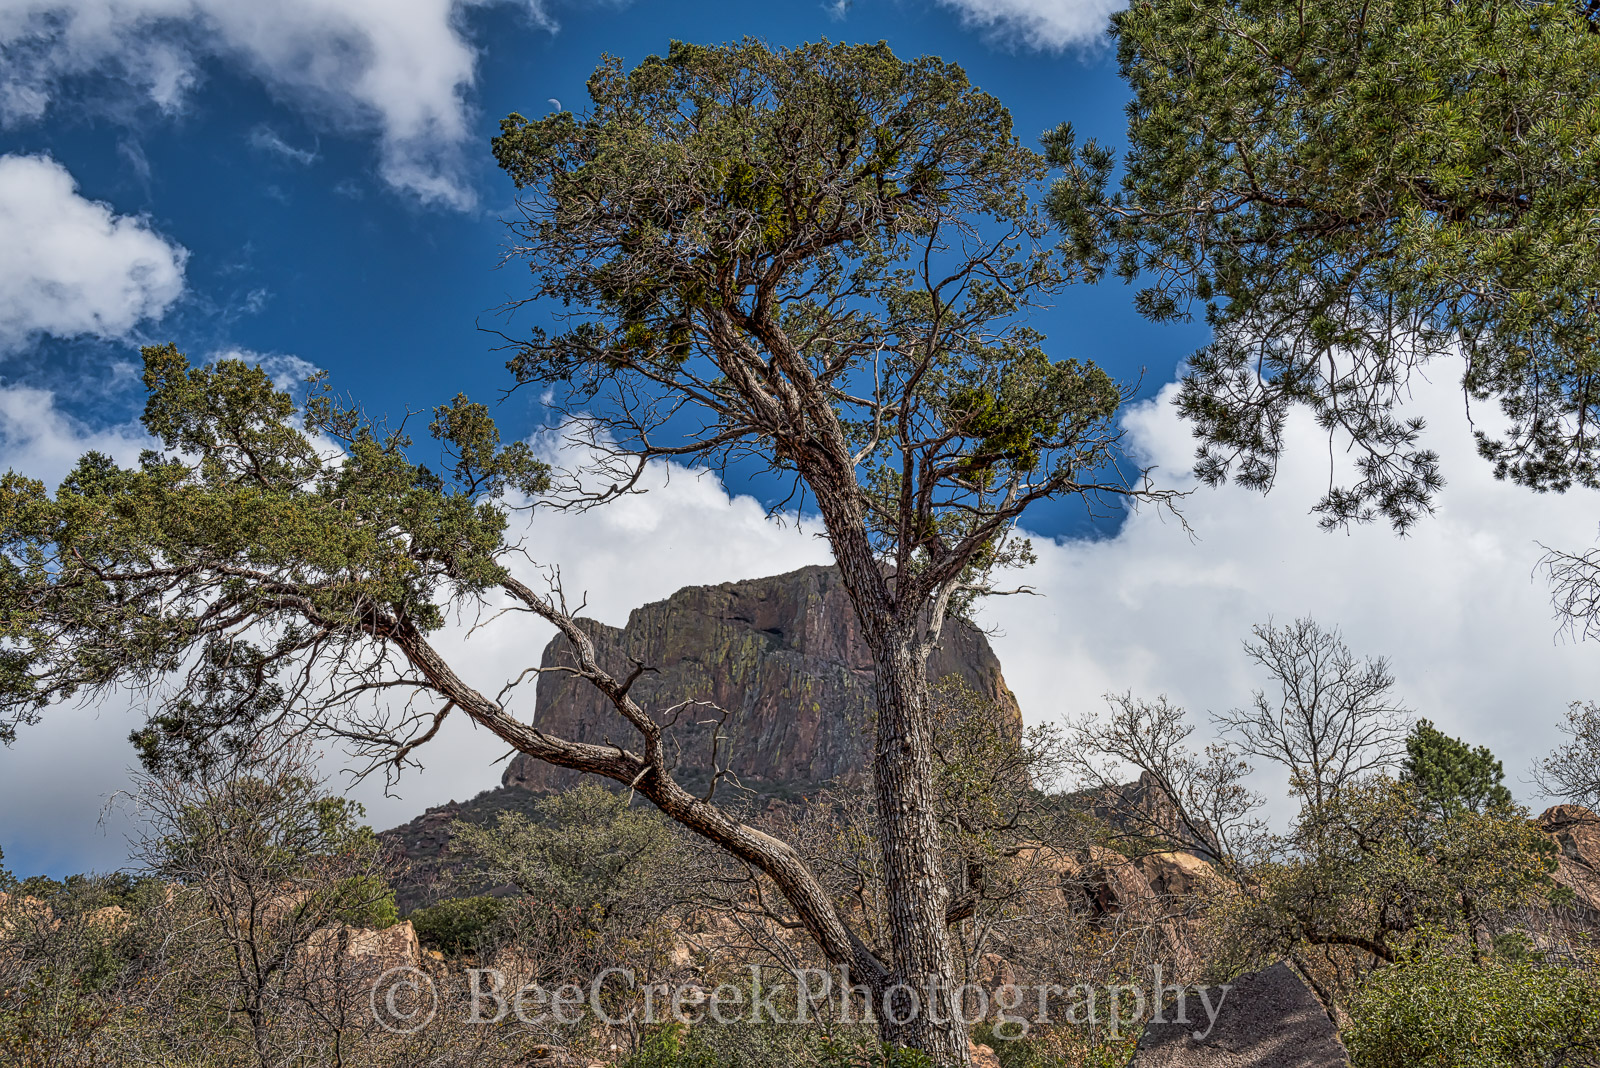 Big Bend National Park, Casa Grande, Mountains, landscape, peak, tree, up close, view, photo